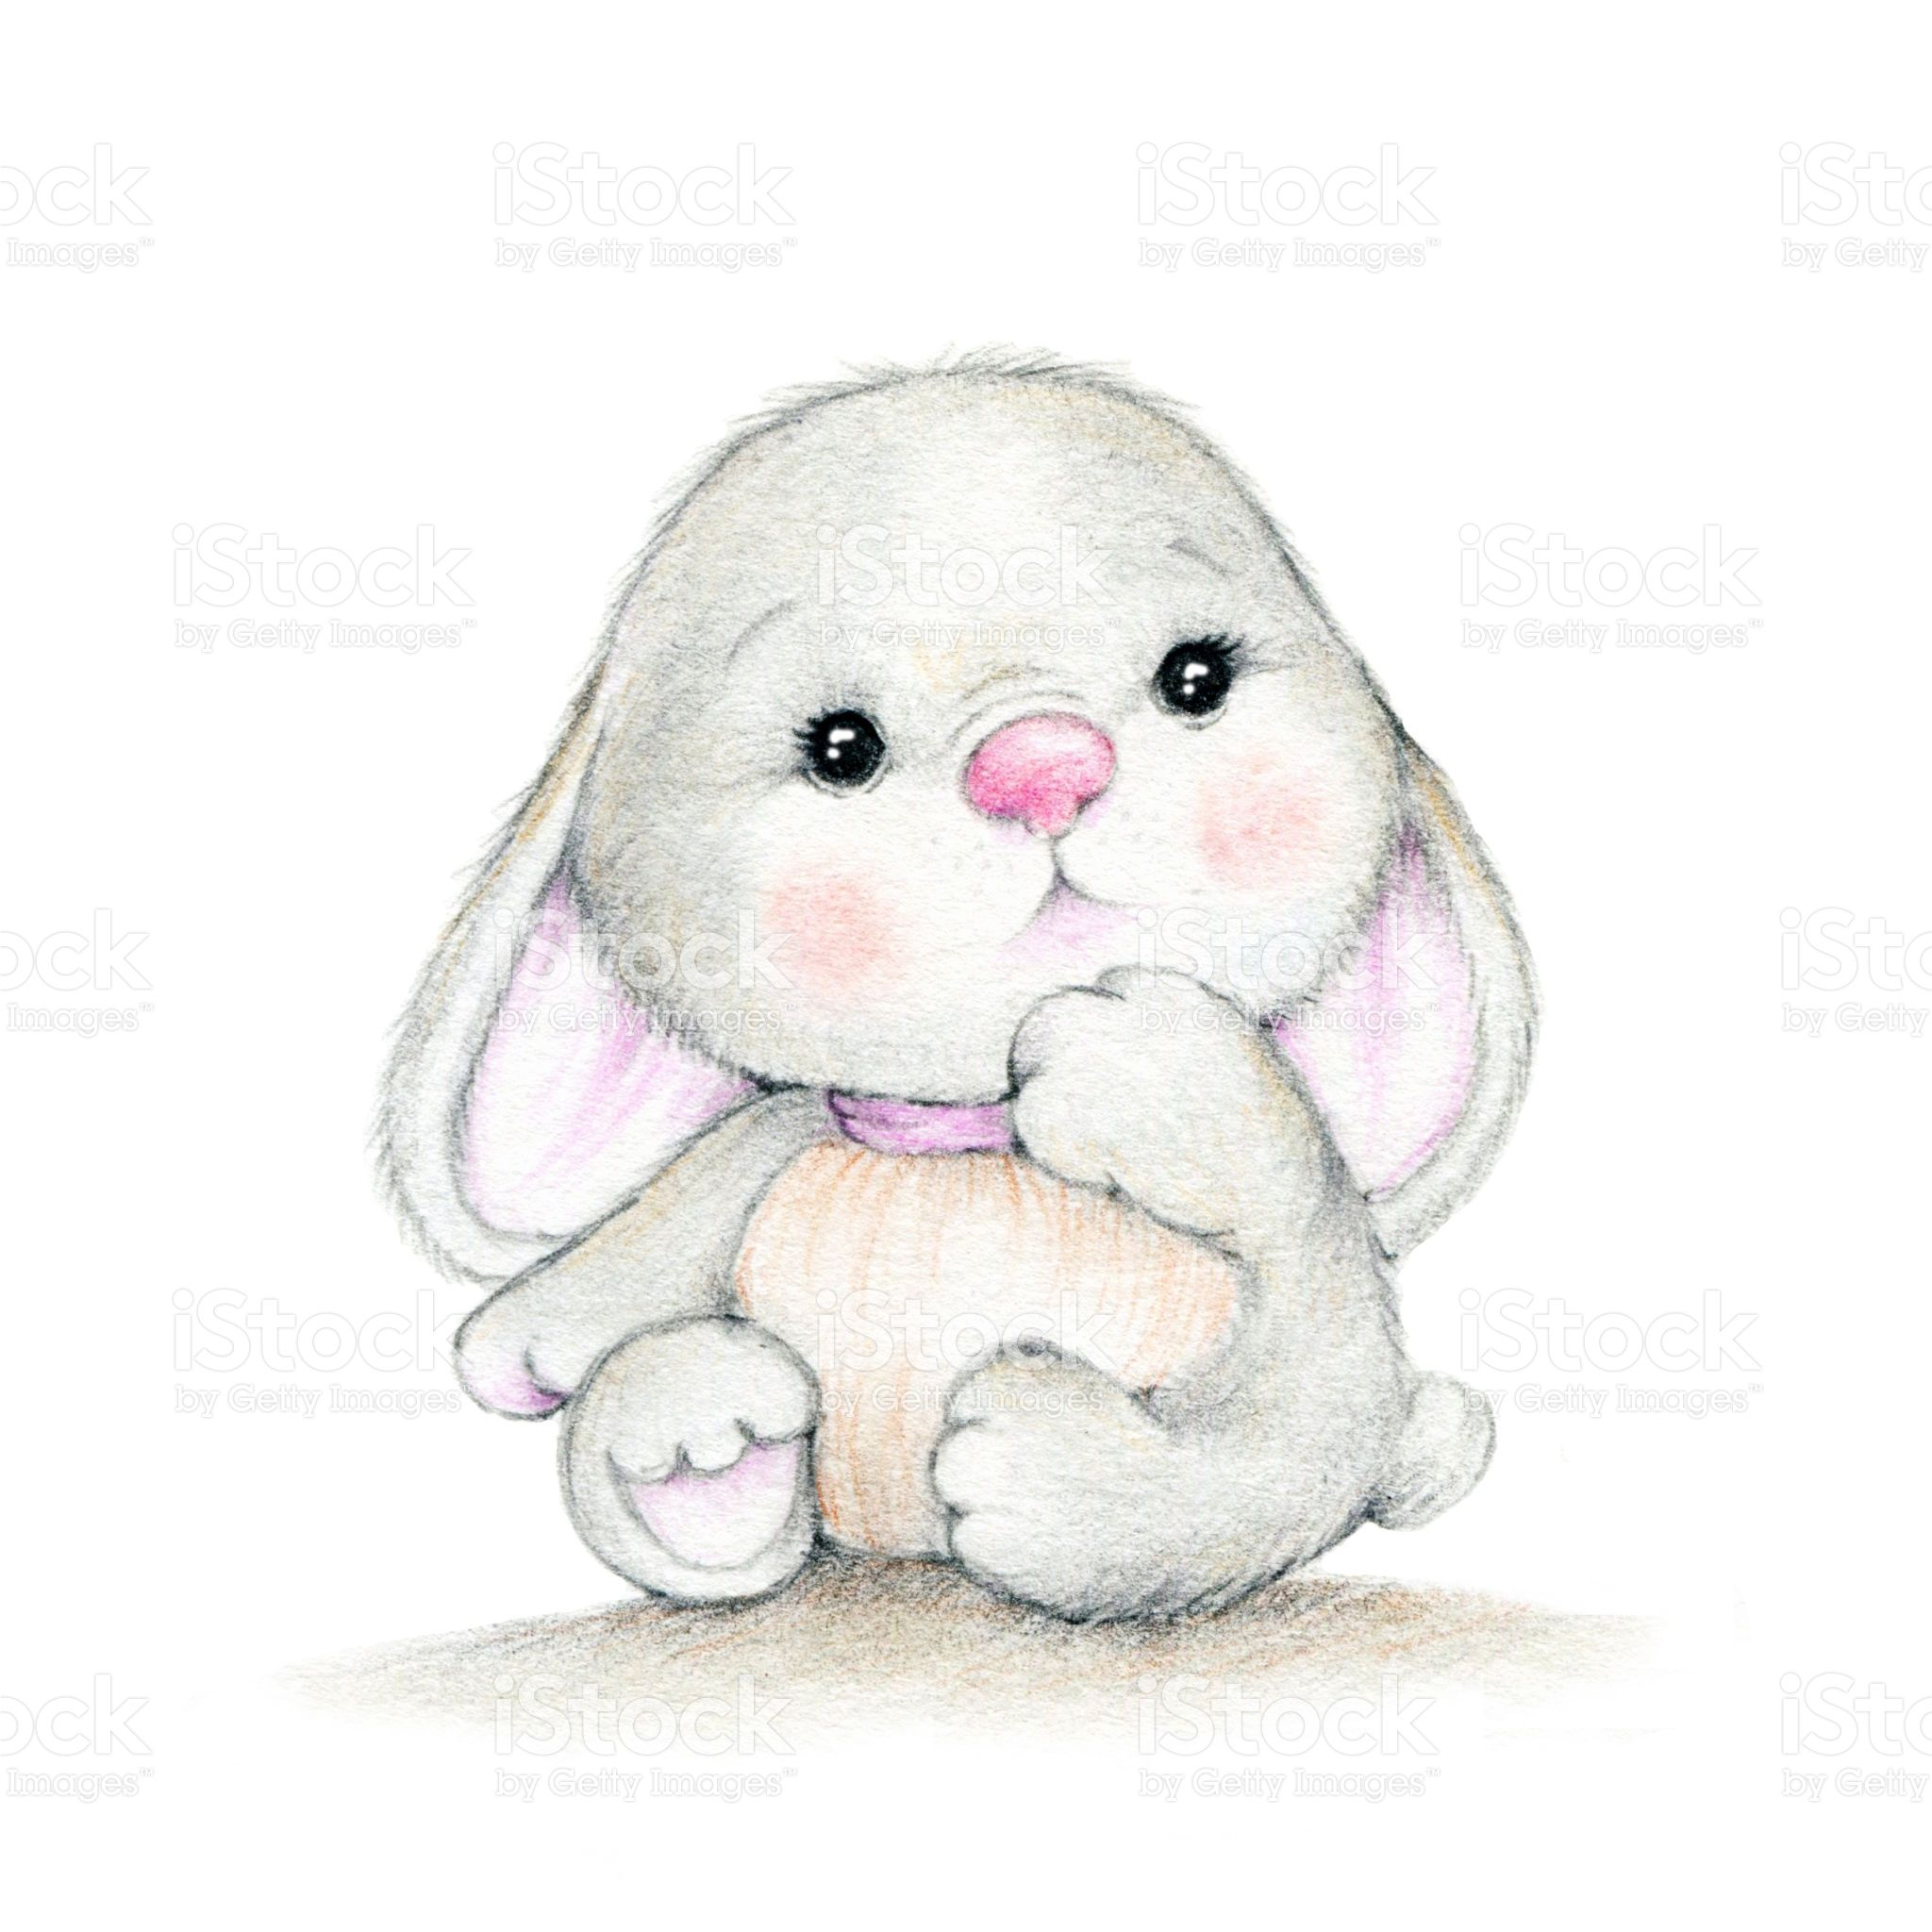 Cute bunny on a white background